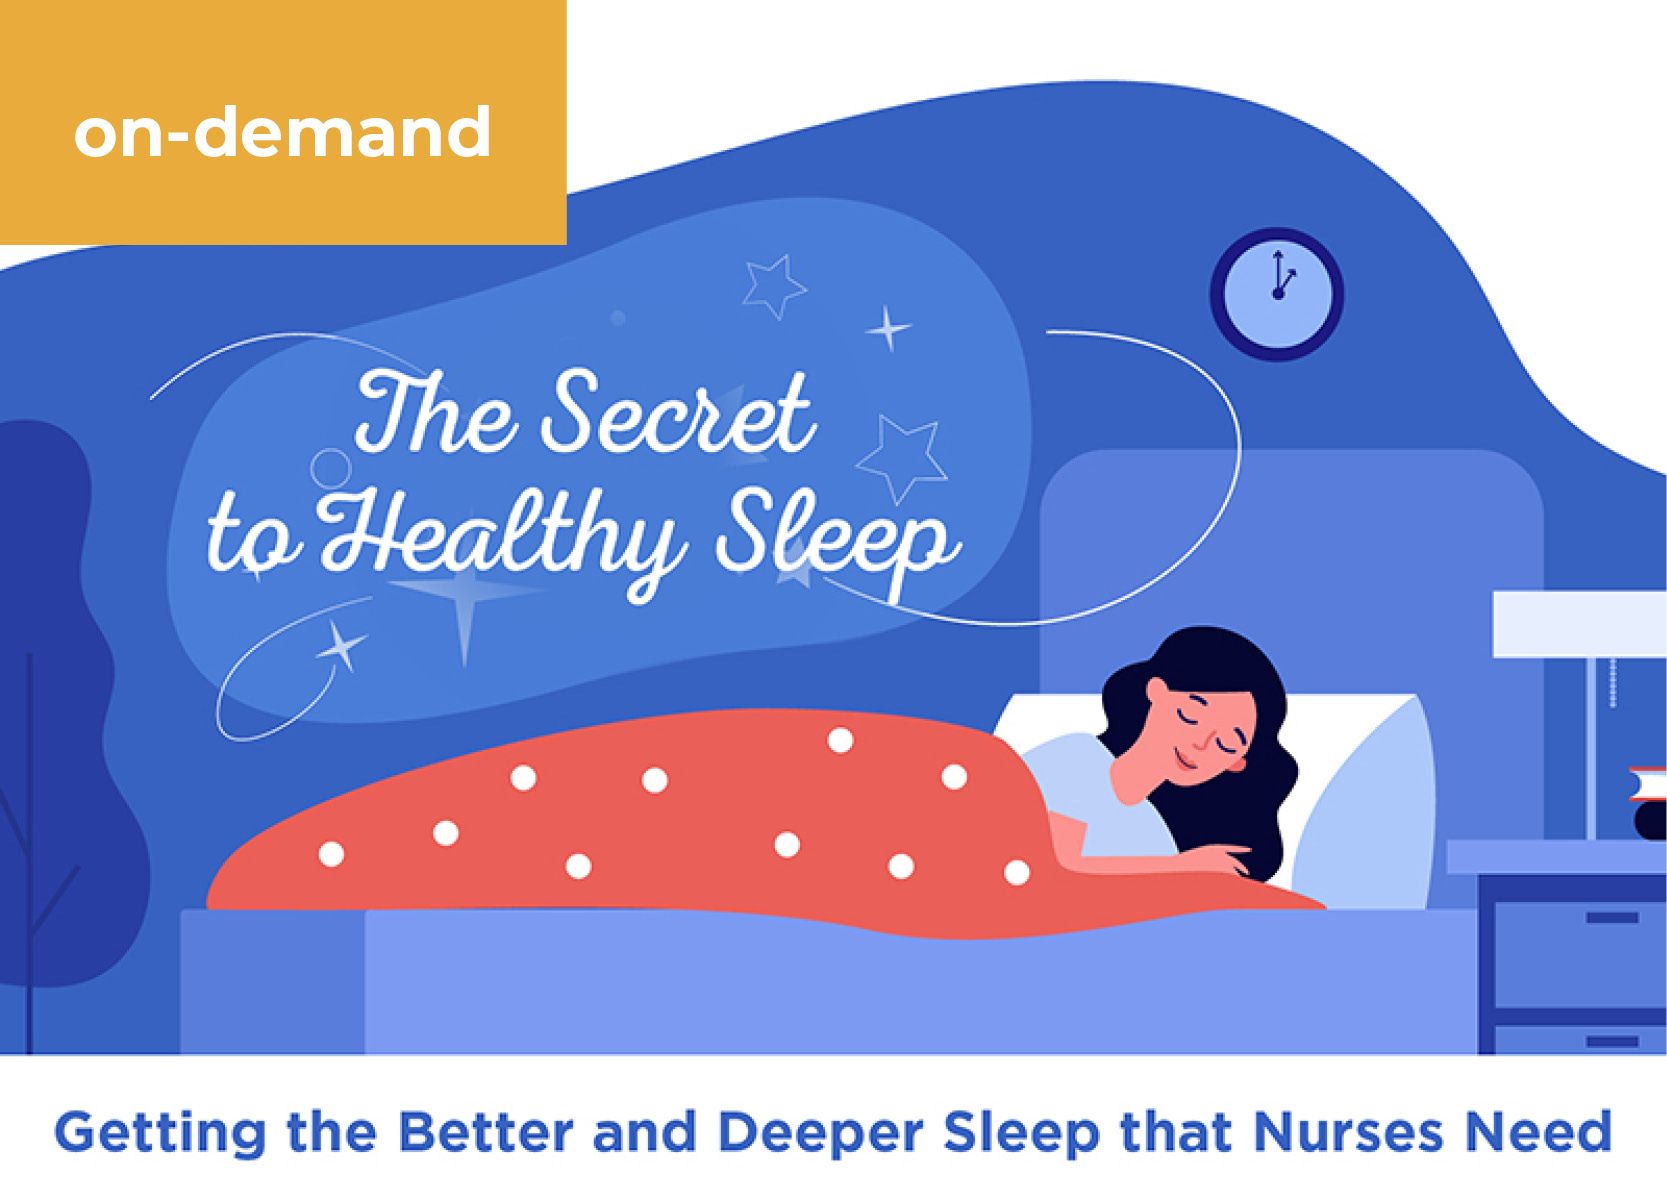 The Secret to Healthy Sleep: Getting the Better and Deeper Sleep that Nurses Need